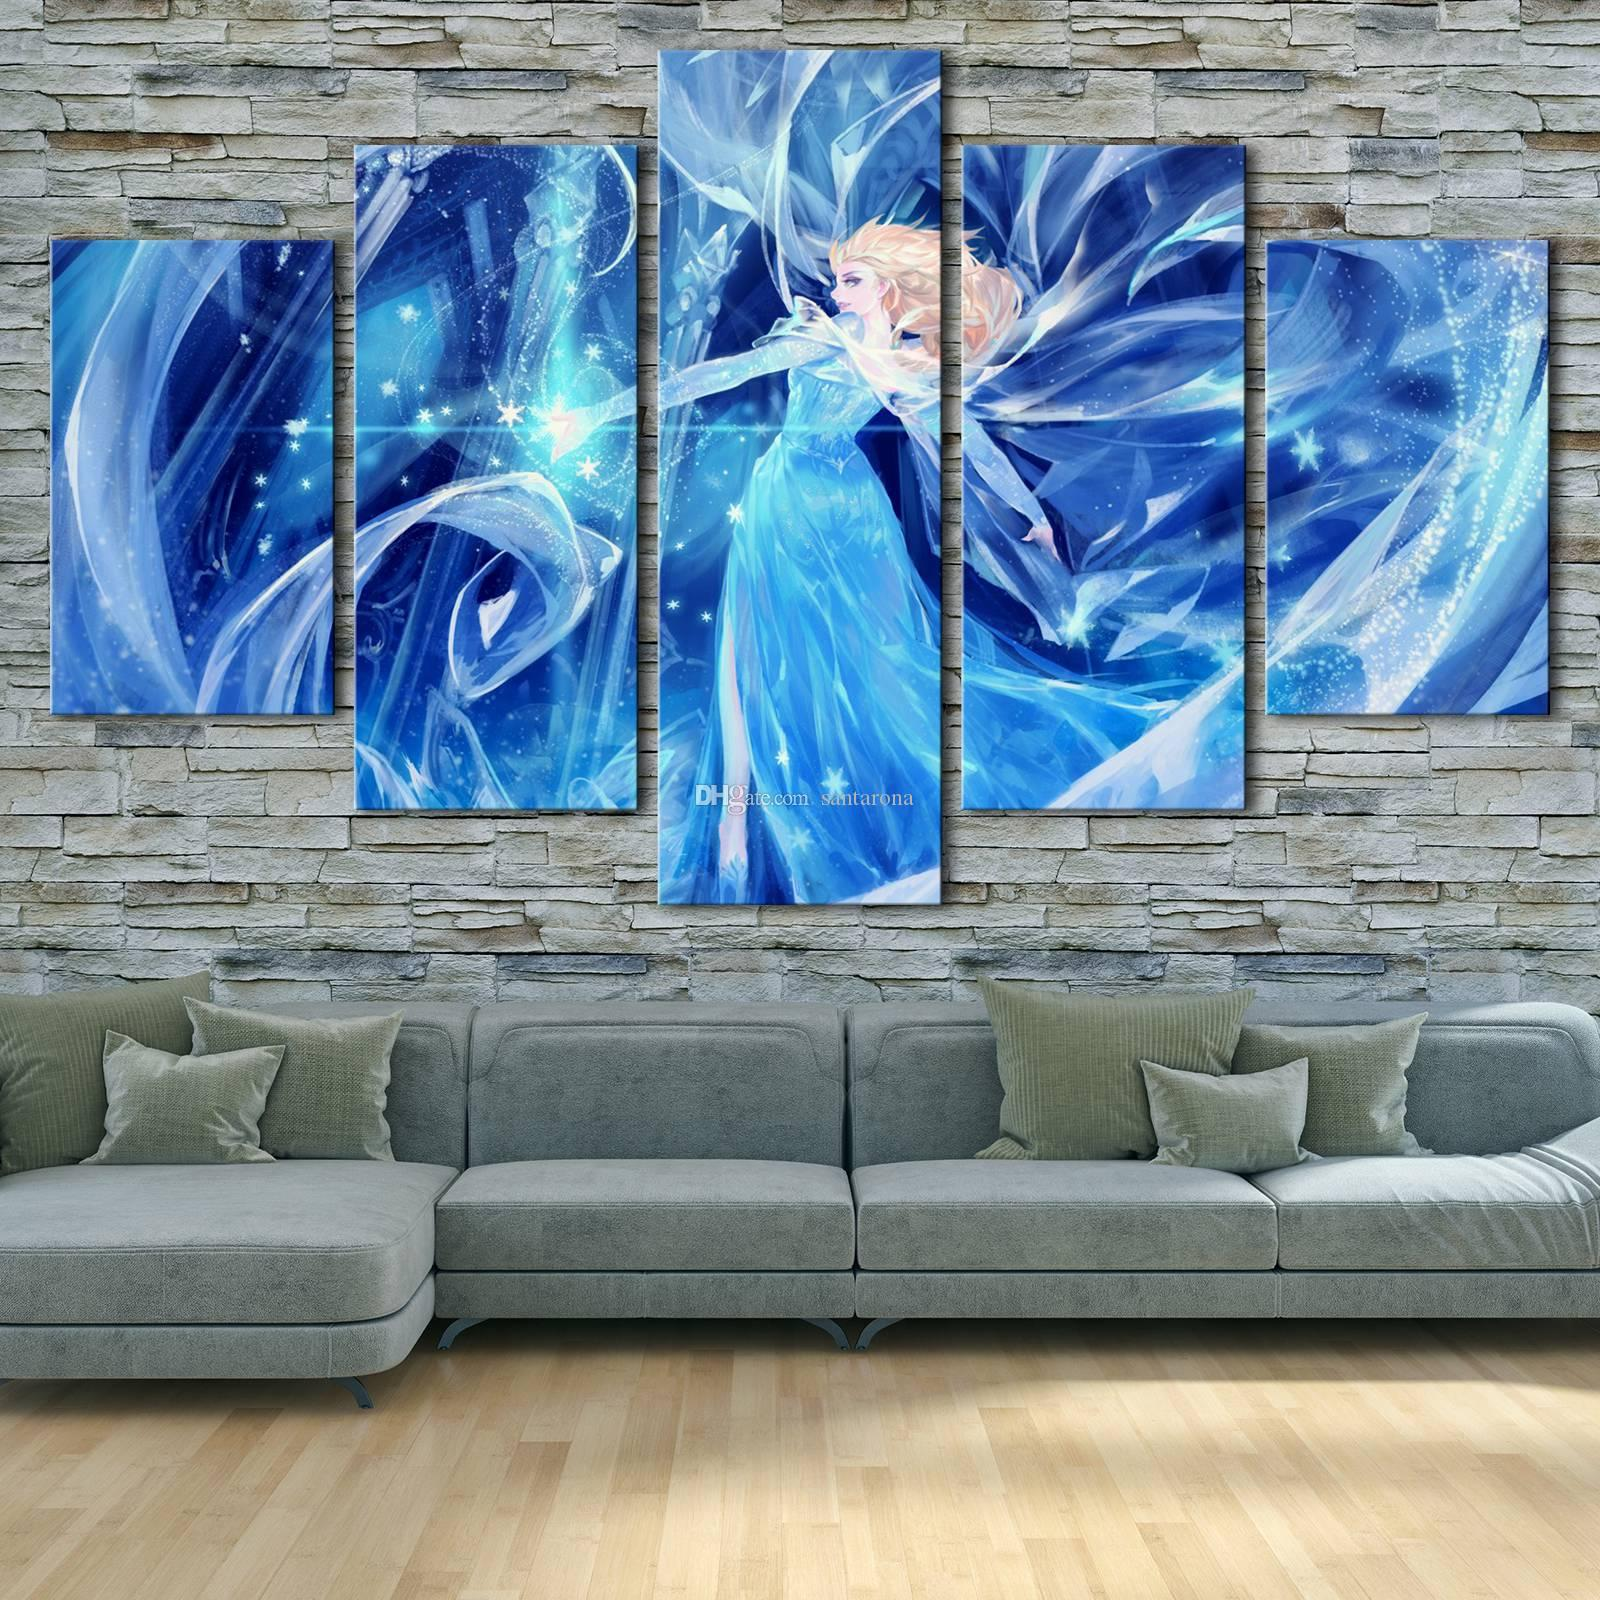 2017 No FrameDisney Frozen Elsa , Series Hd Canvas Print 5 Panel Wall Art  Oil Painting Textured Abstract Pictures Decor Living Room Decoration From  ... Part 49